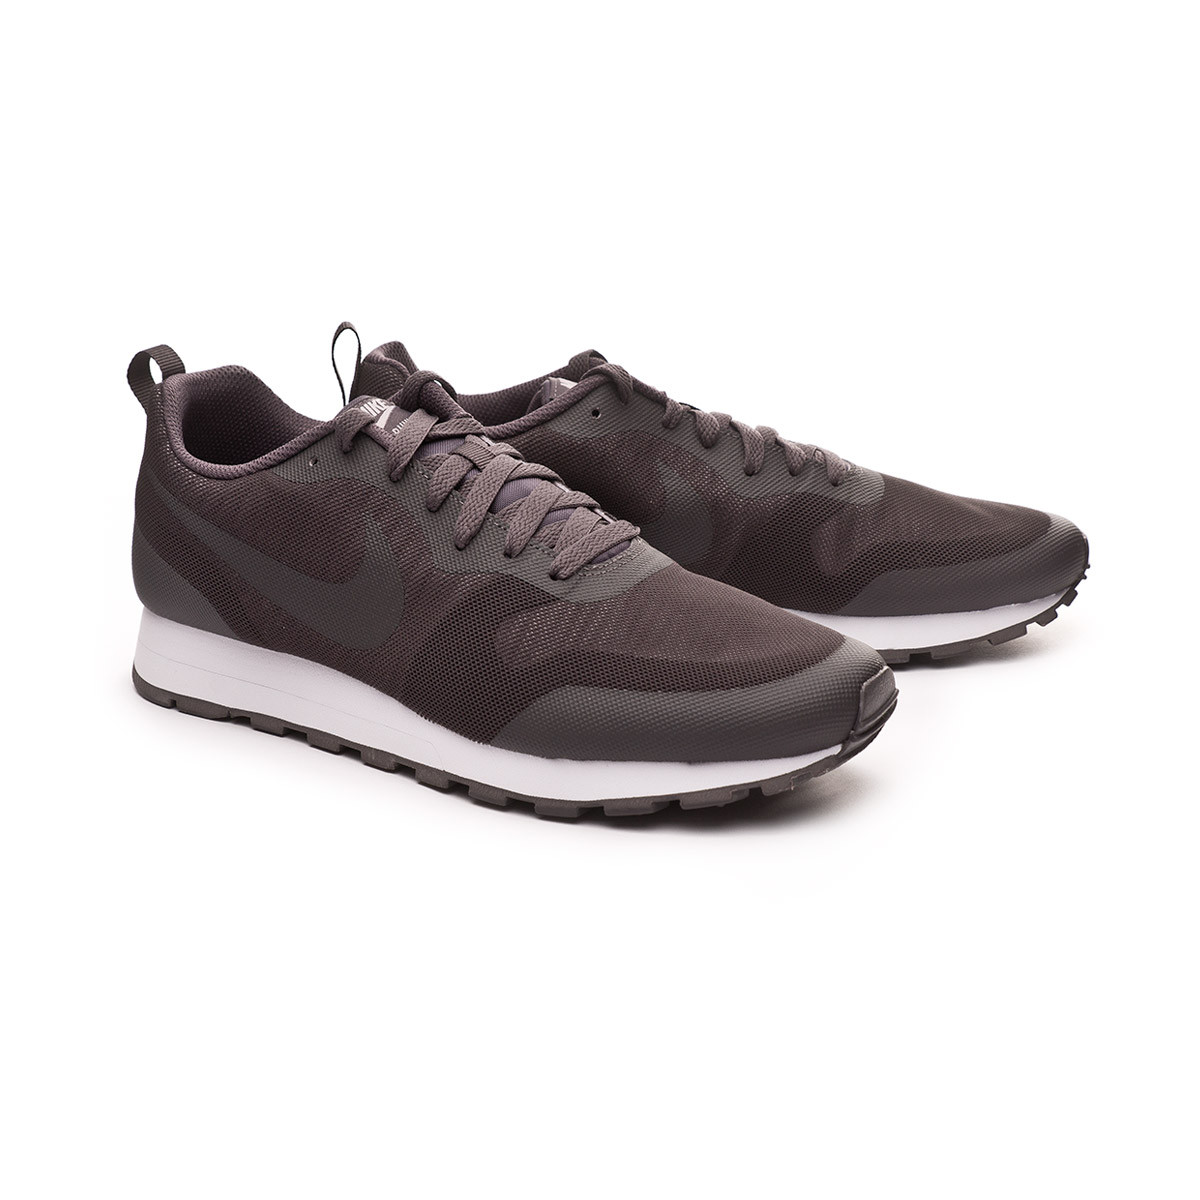 768a7d0fc09 Trainers Nike MD Runner 2 19 Thunder grey-Gunsmoke-Black - Football ...